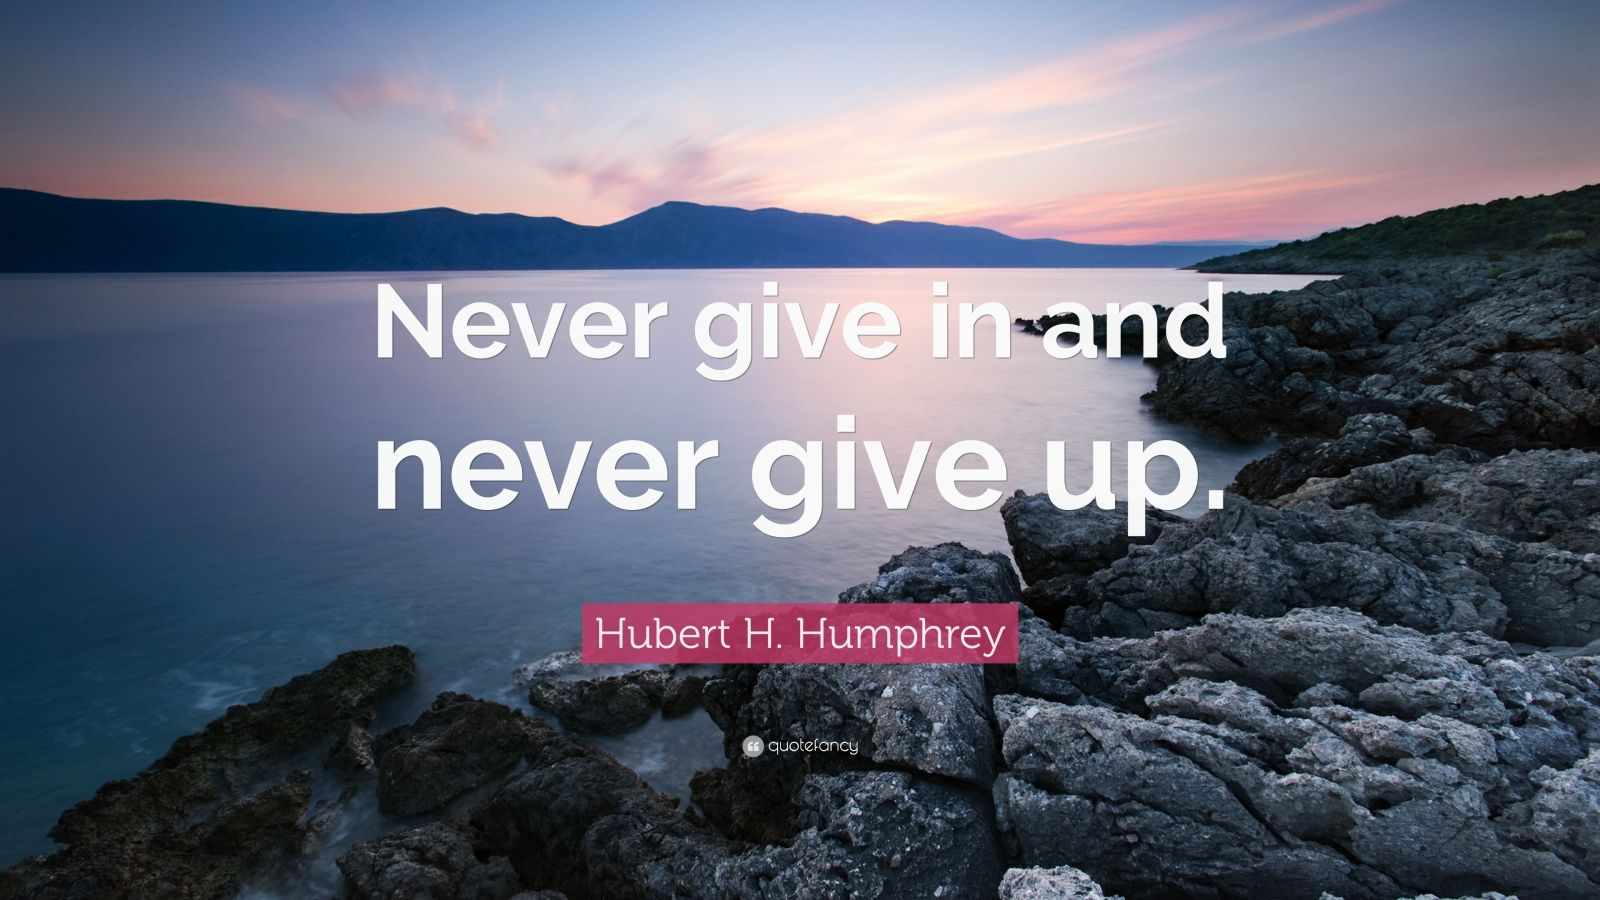 "Not Giving Up Quotes: ""Never give in and never give up."" — Hubert H. Humphrey"